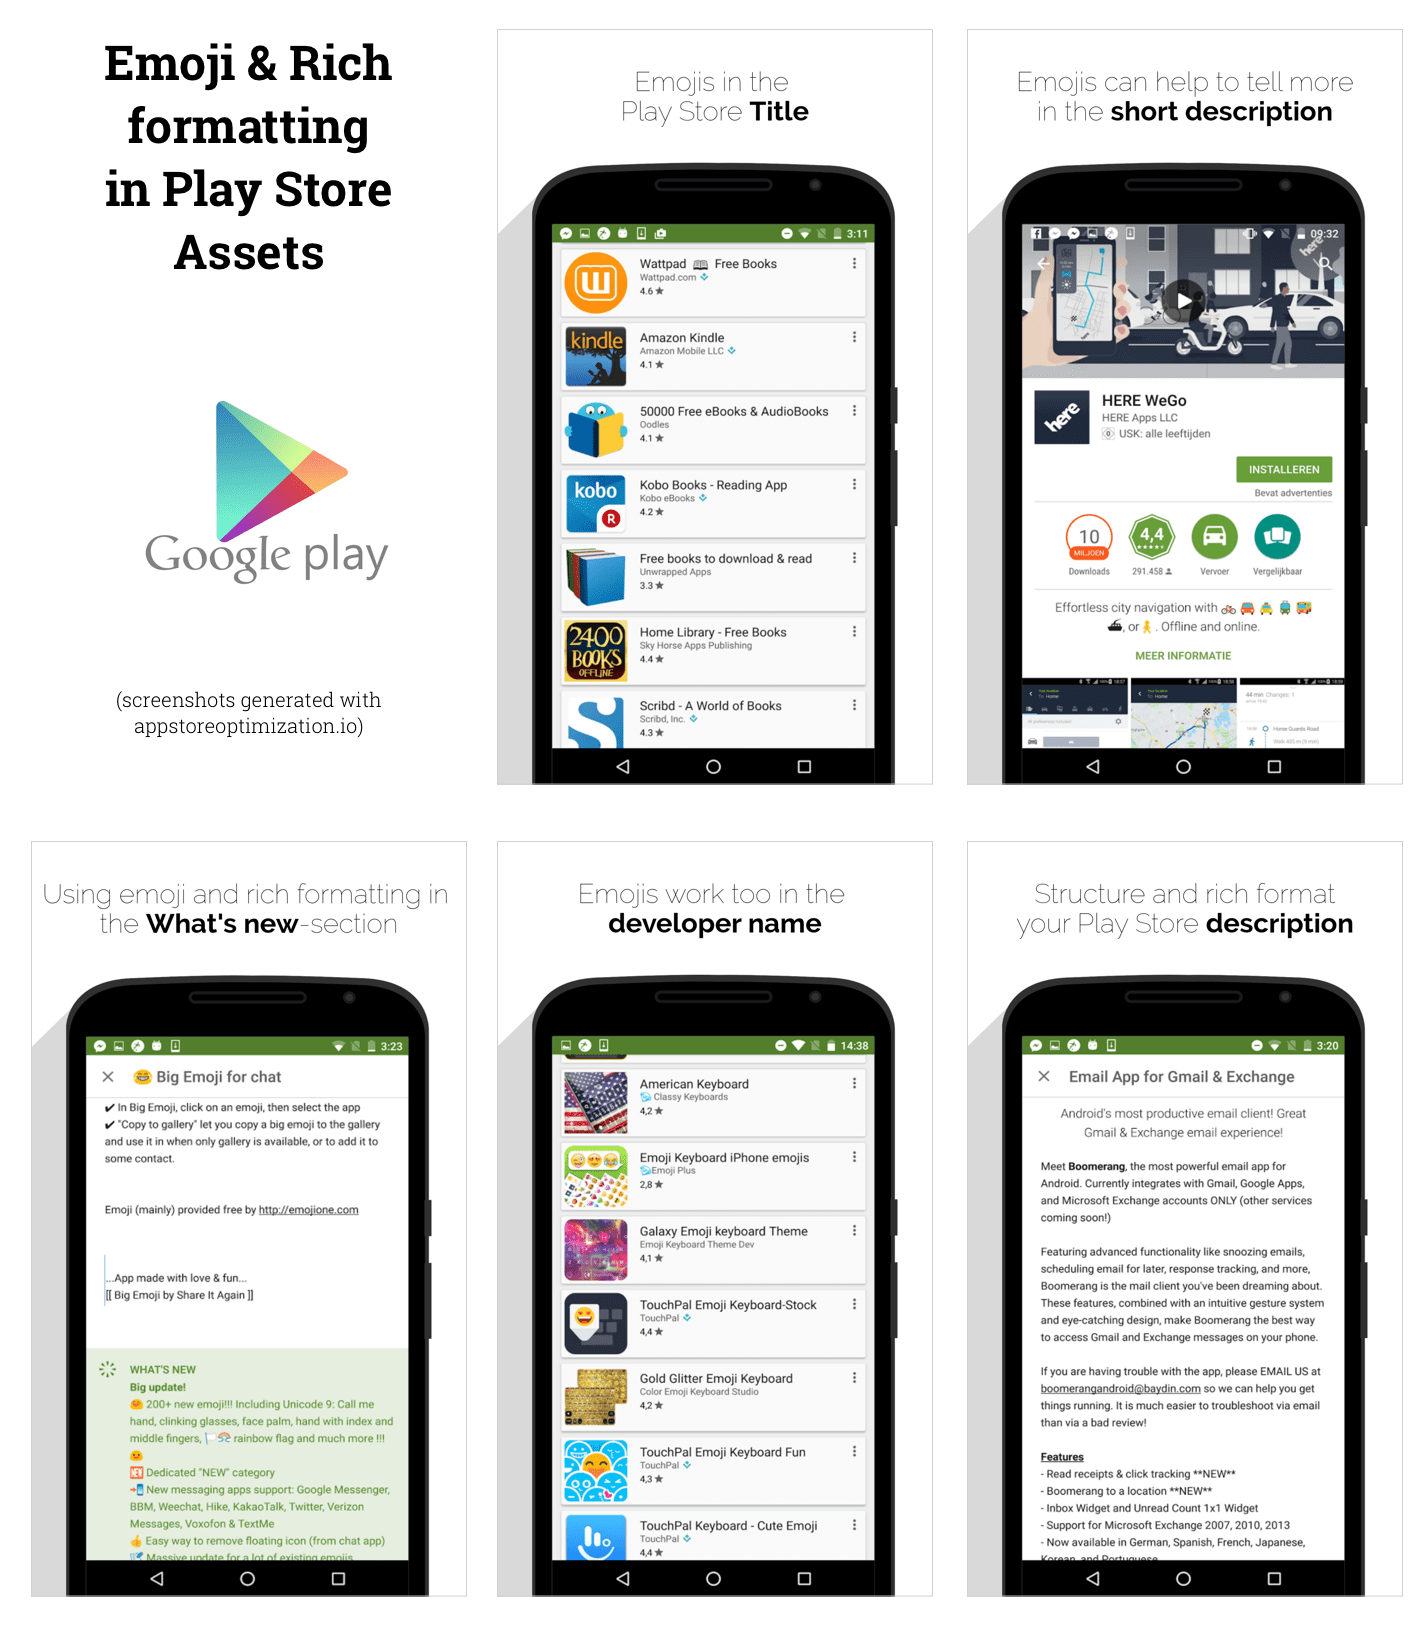 emojis & rich formatting in play stores assets